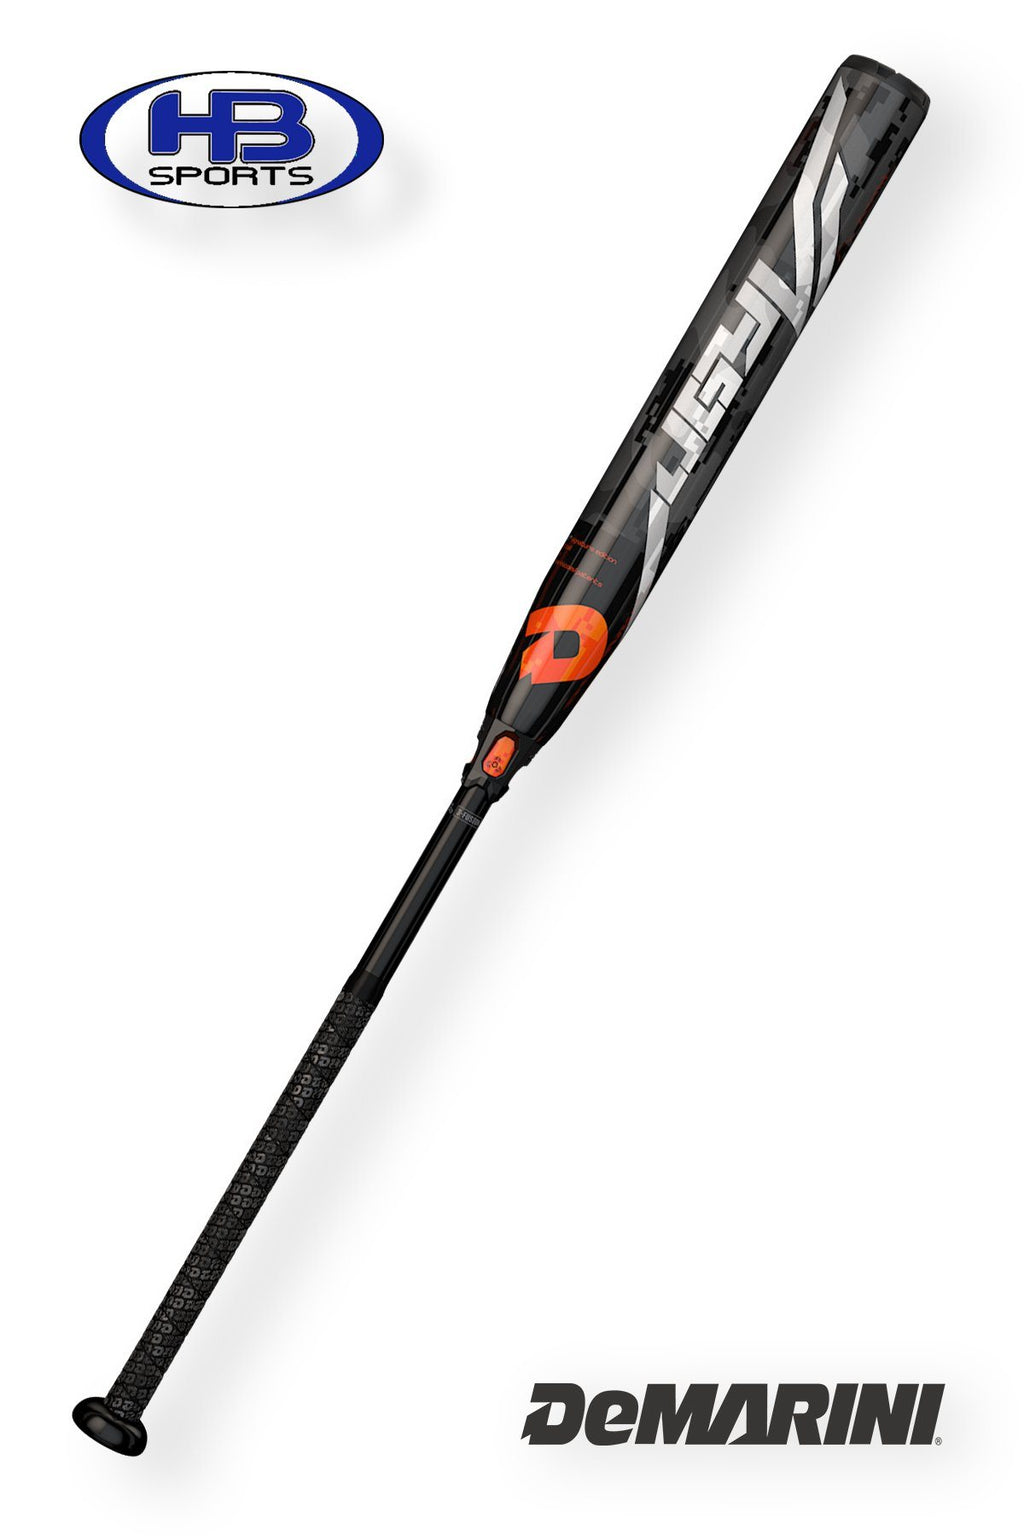 2018 DeMarini DB44 Juggy OVL USSSA Slowpitch Softball Bat WTDXNTB-18 at Headbangersports.com